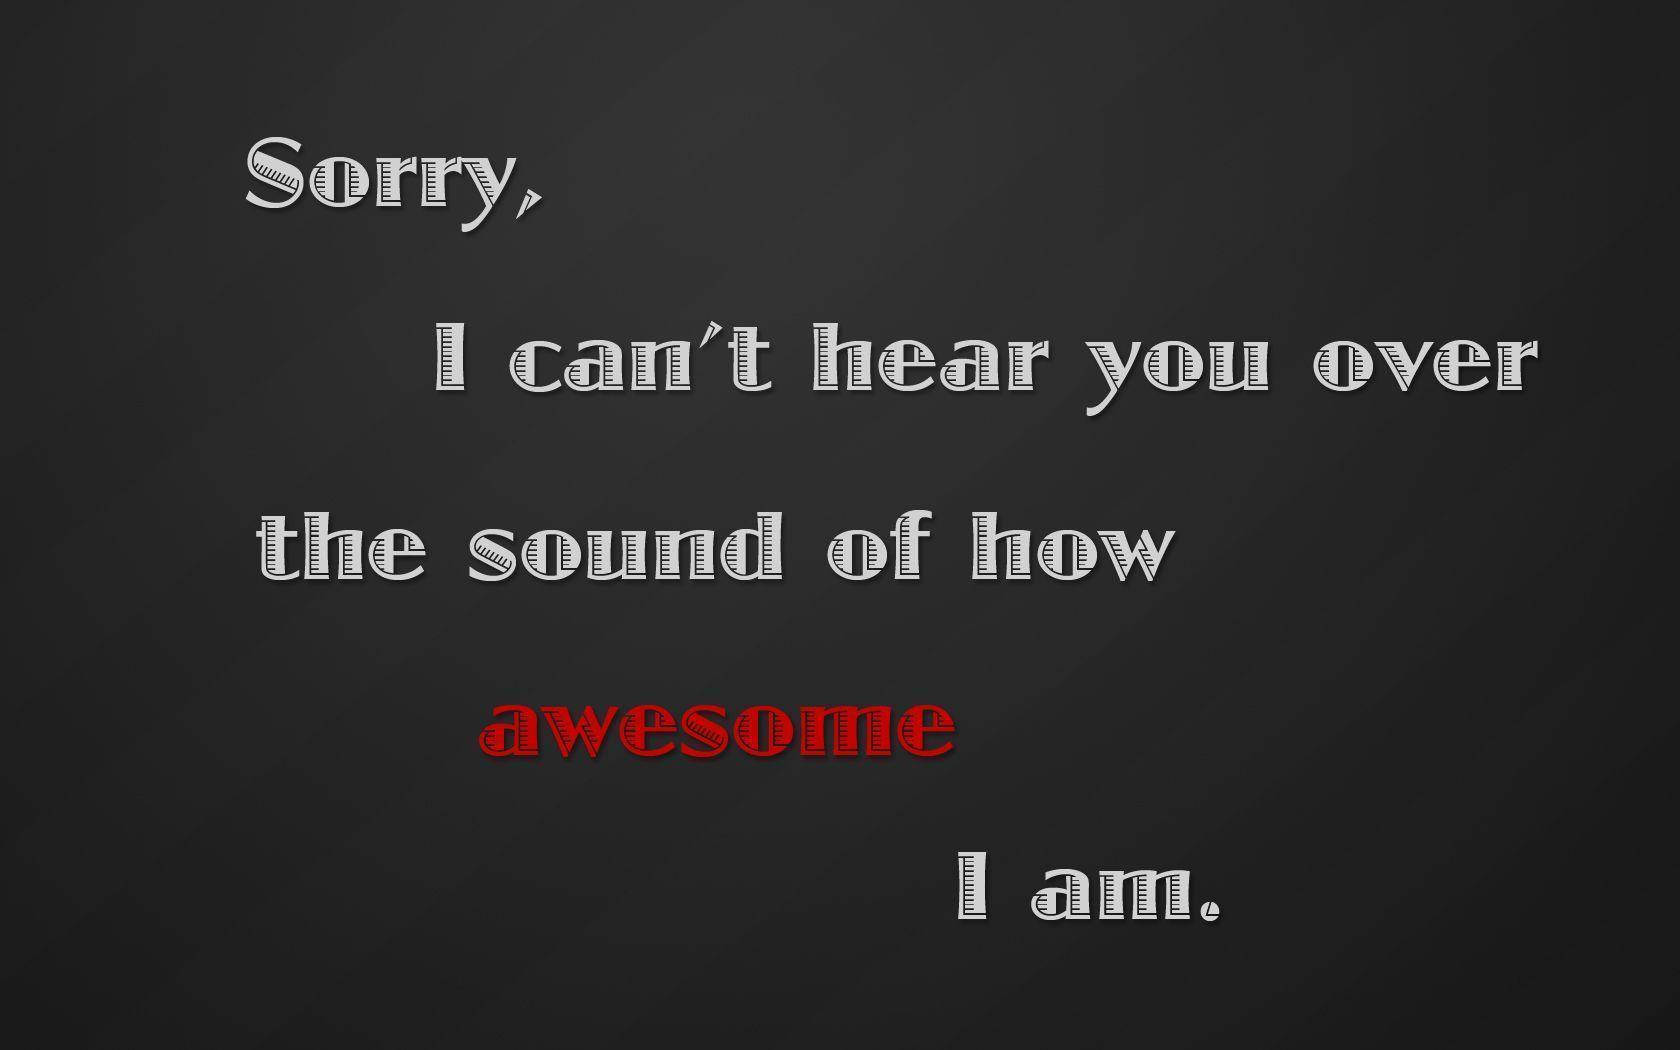 am awesome wallpaper - photo #16